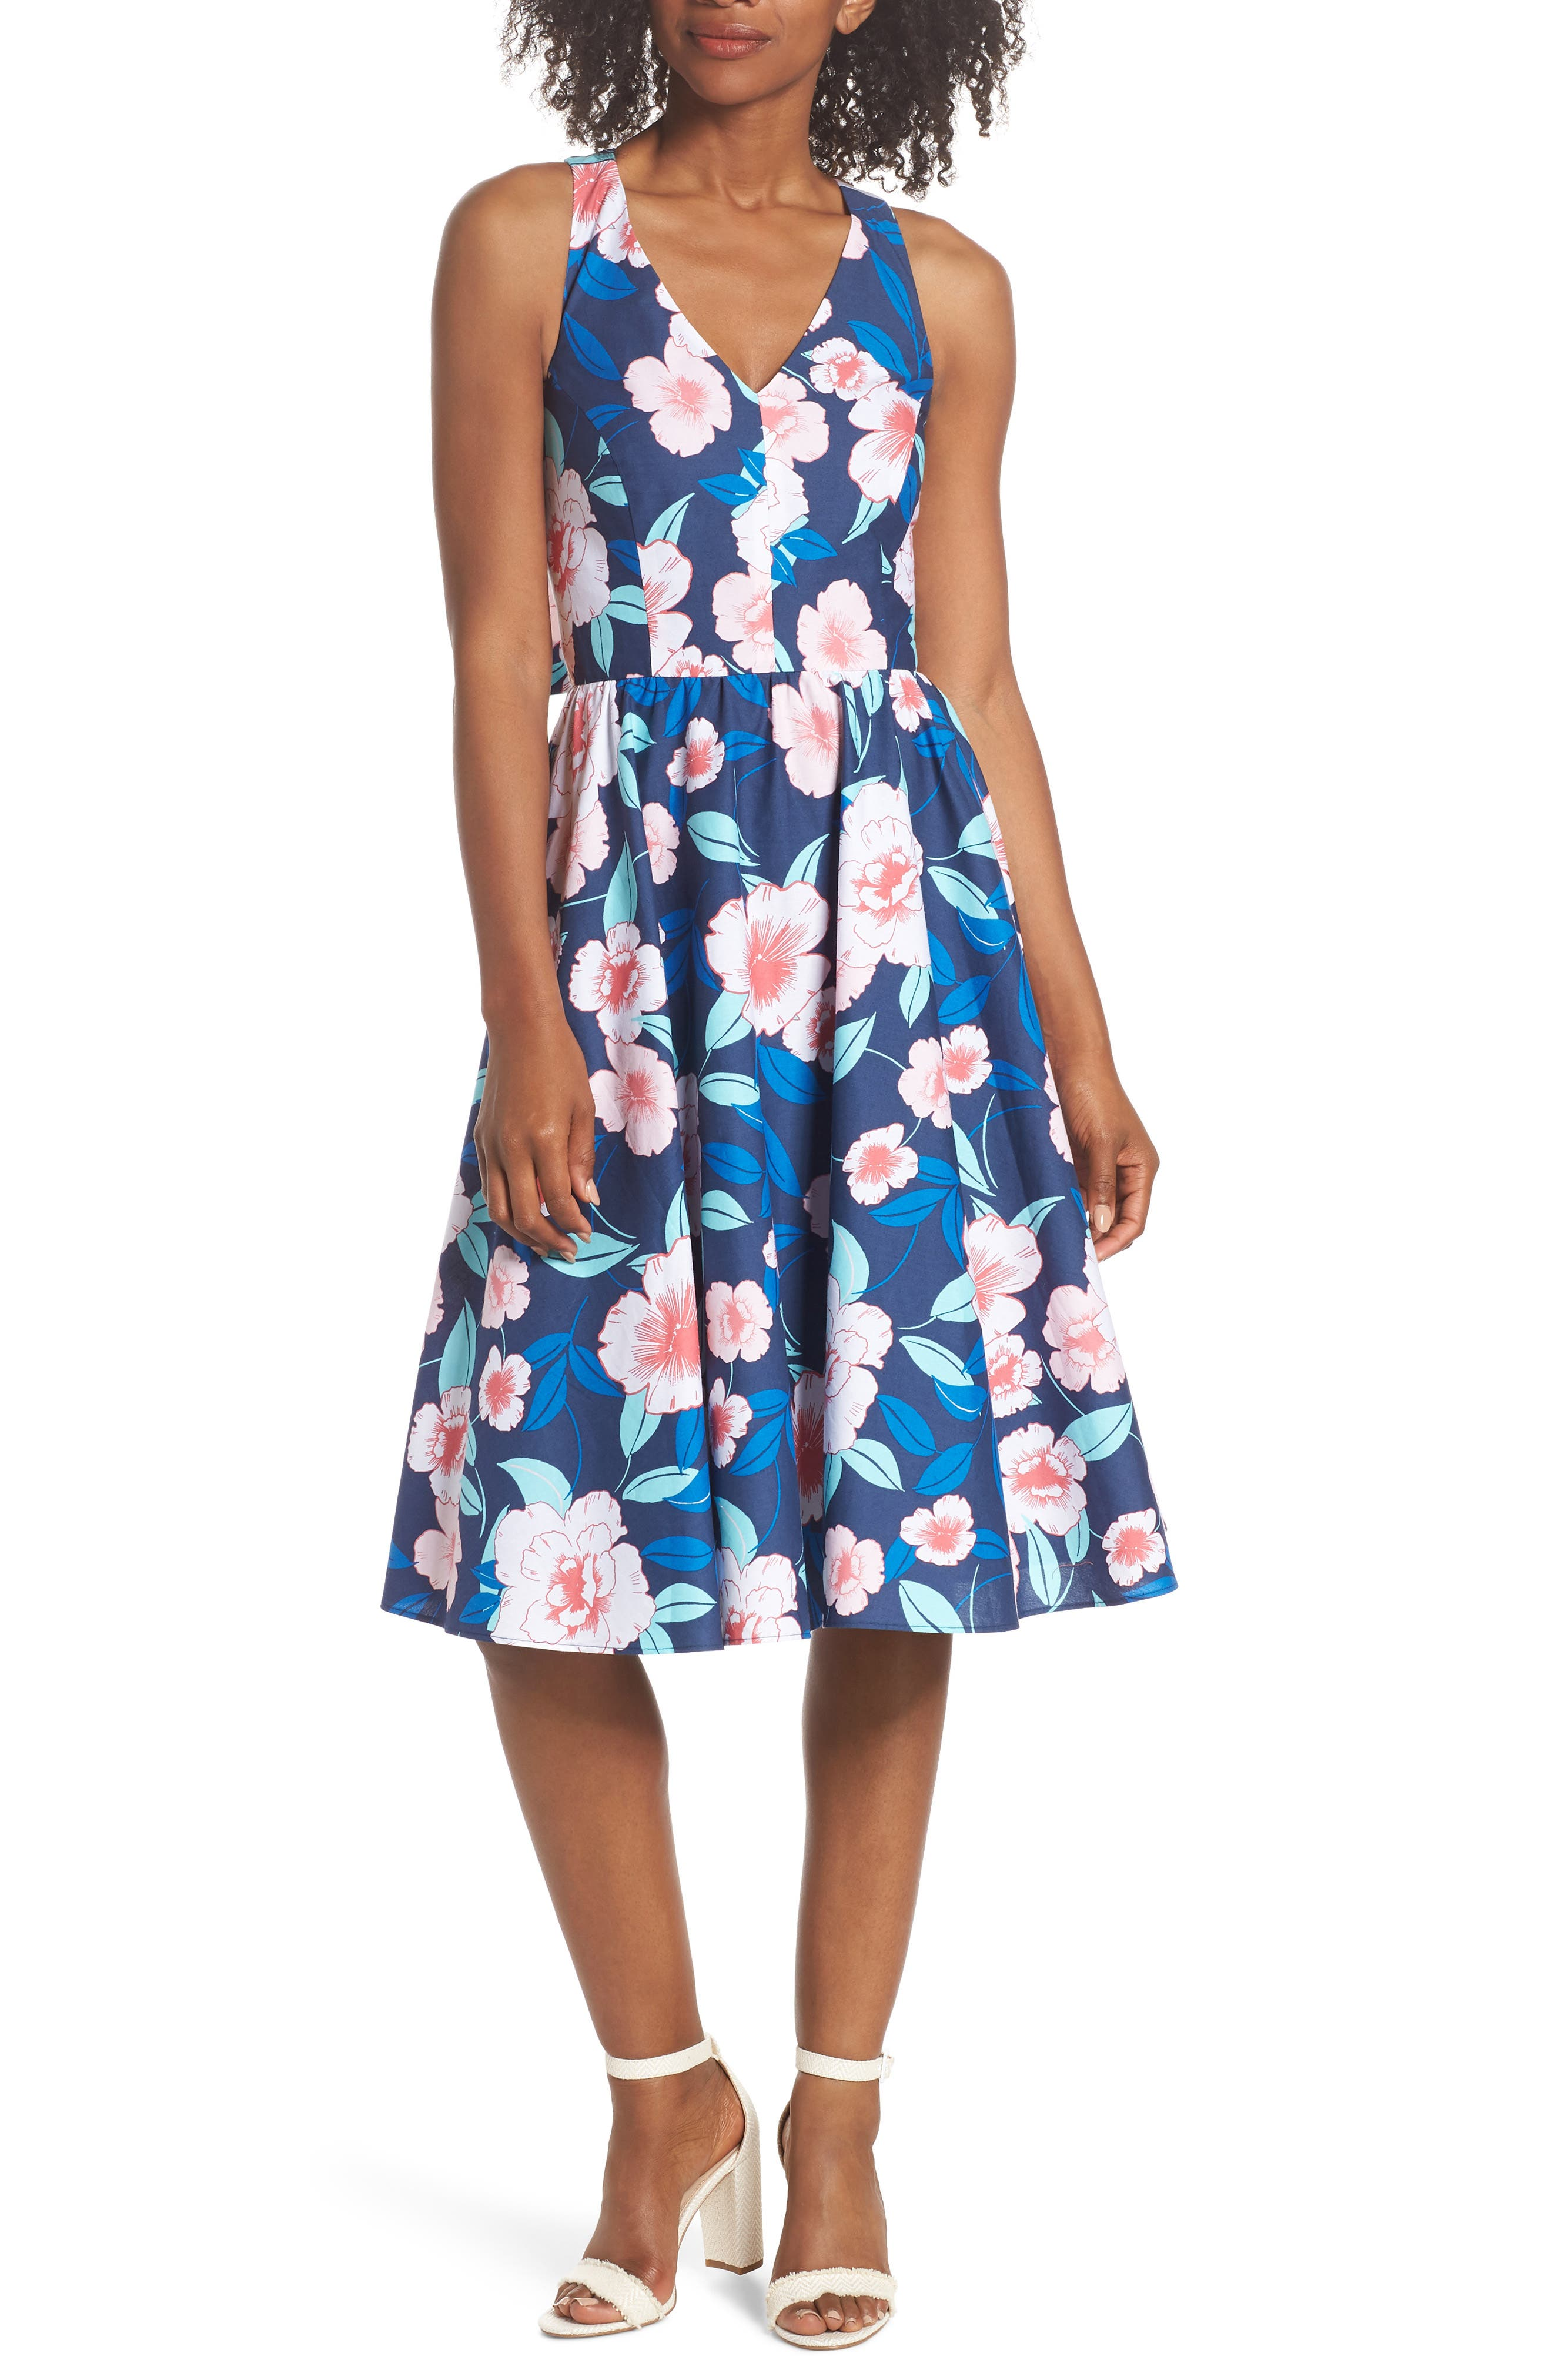 Floral Fit & Flare Halter Dress,                             Main thumbnail 1, color,                             NAVY/ PINK